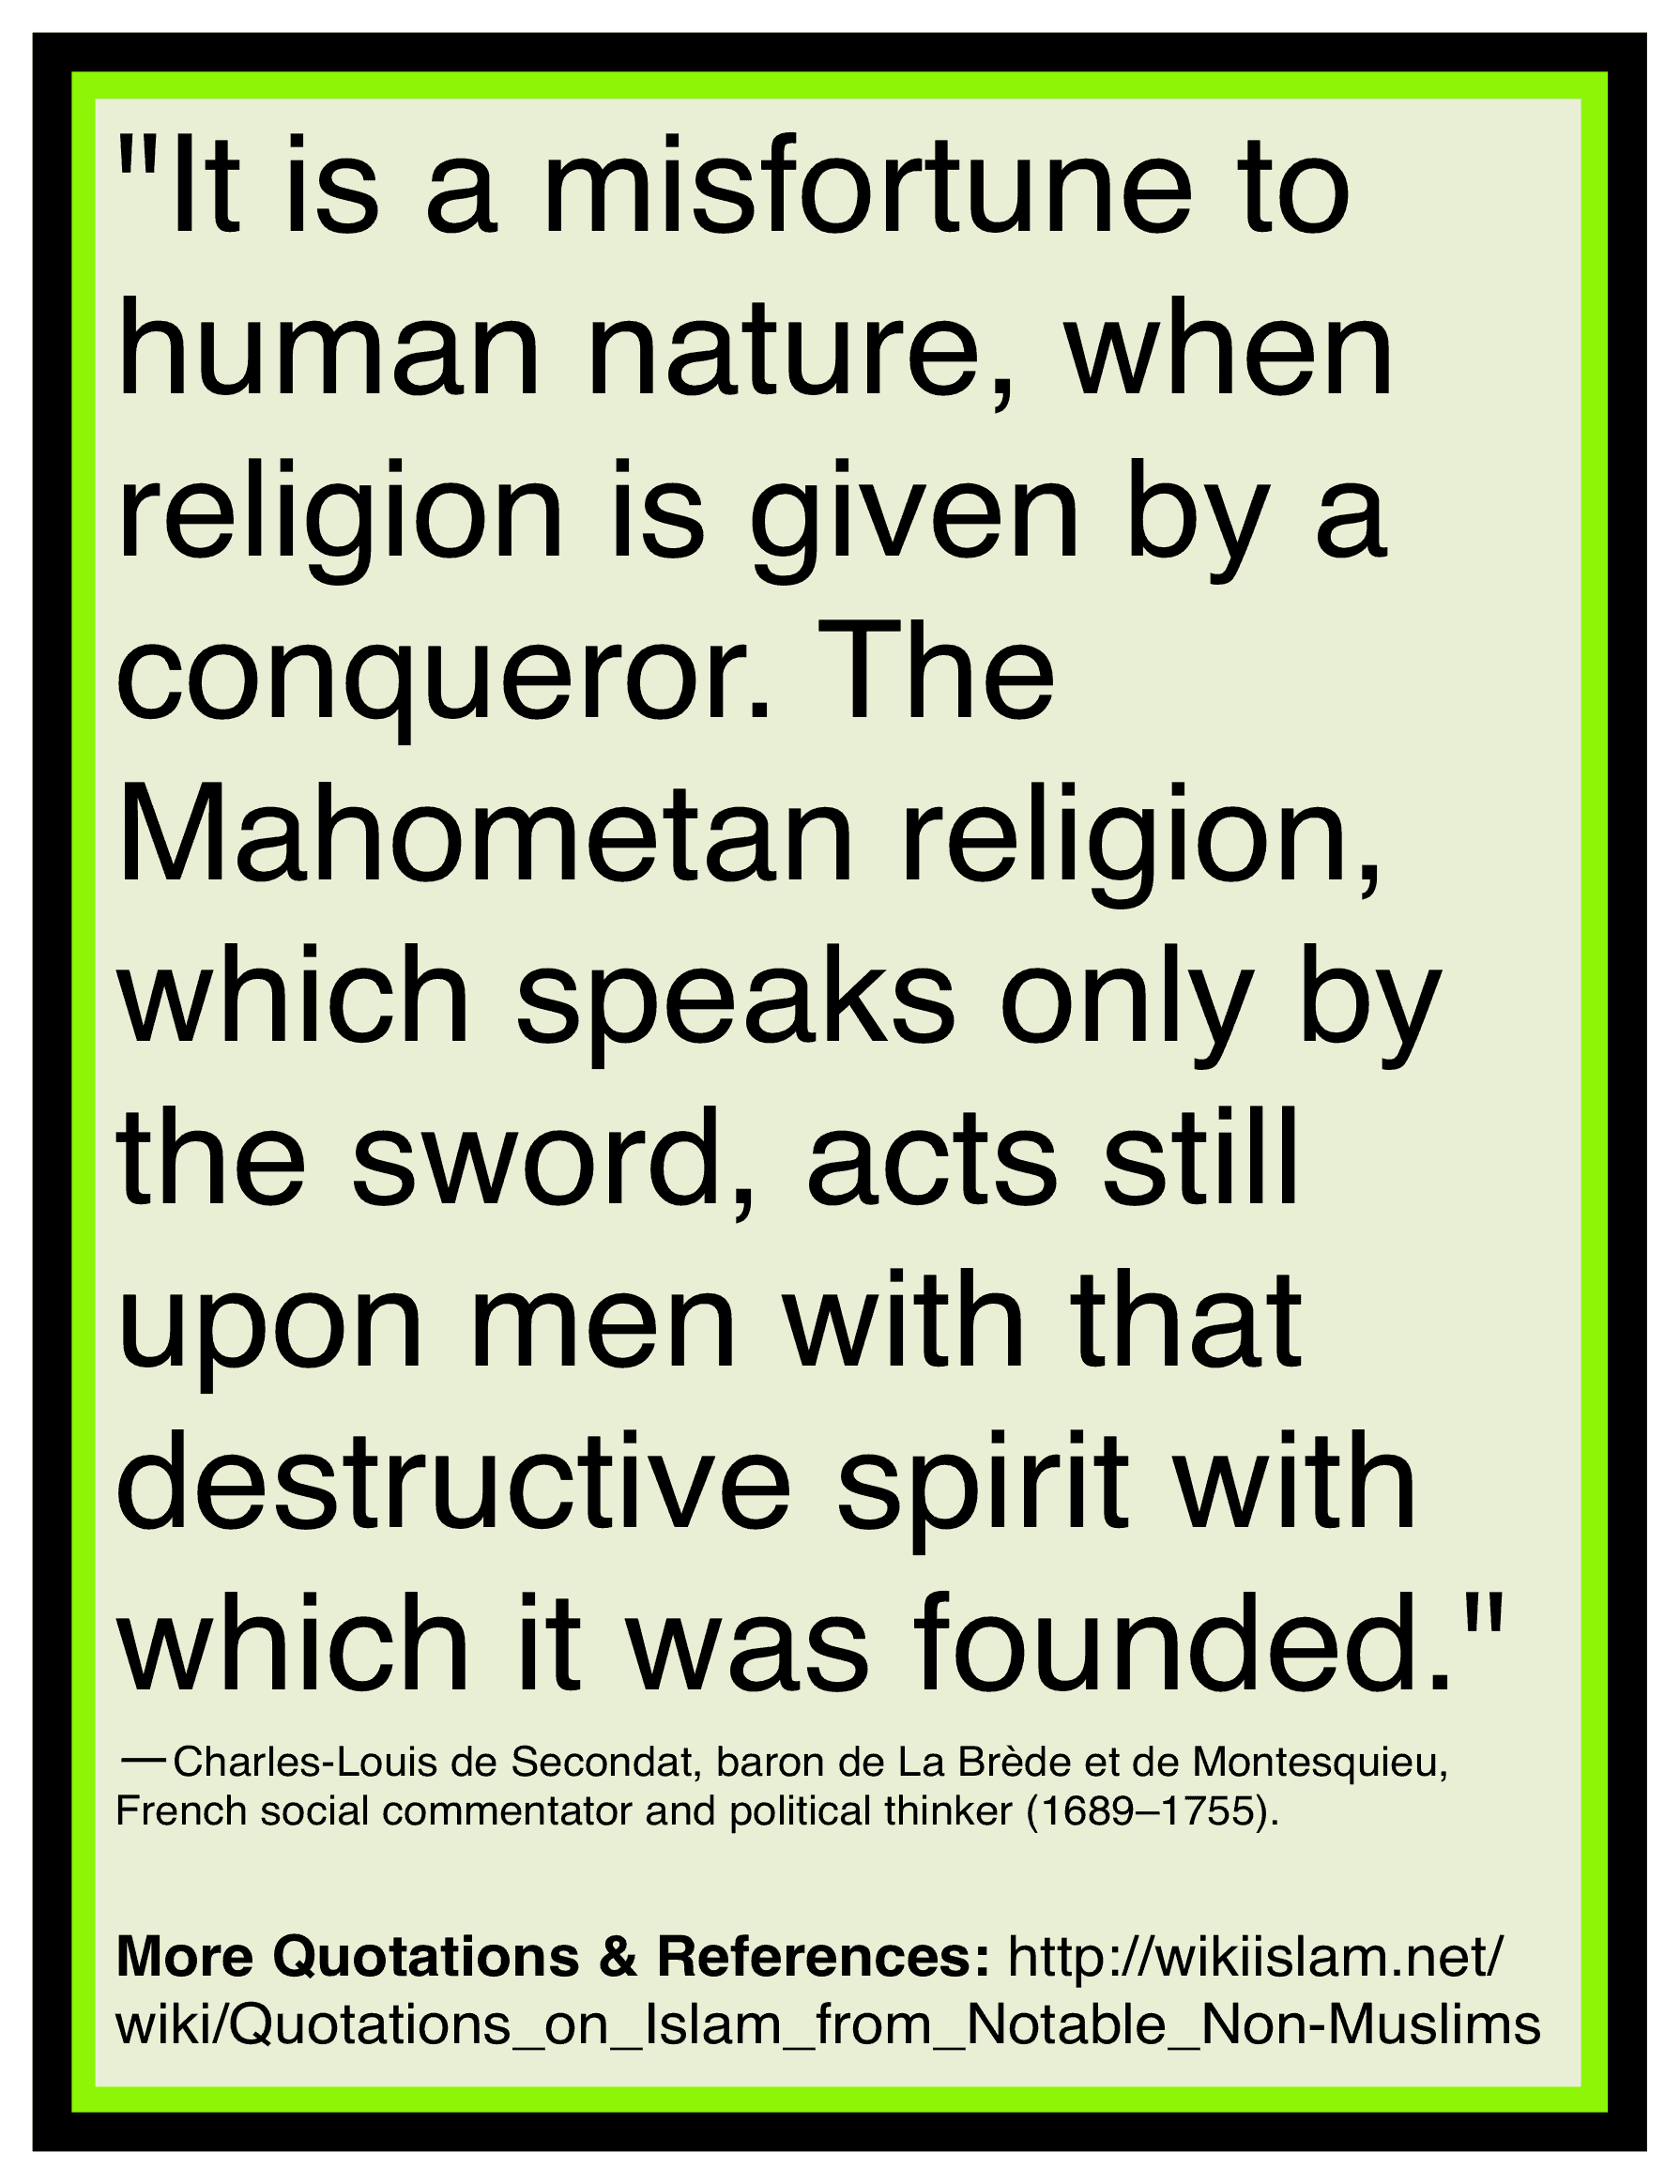 Islam is a religion of violence